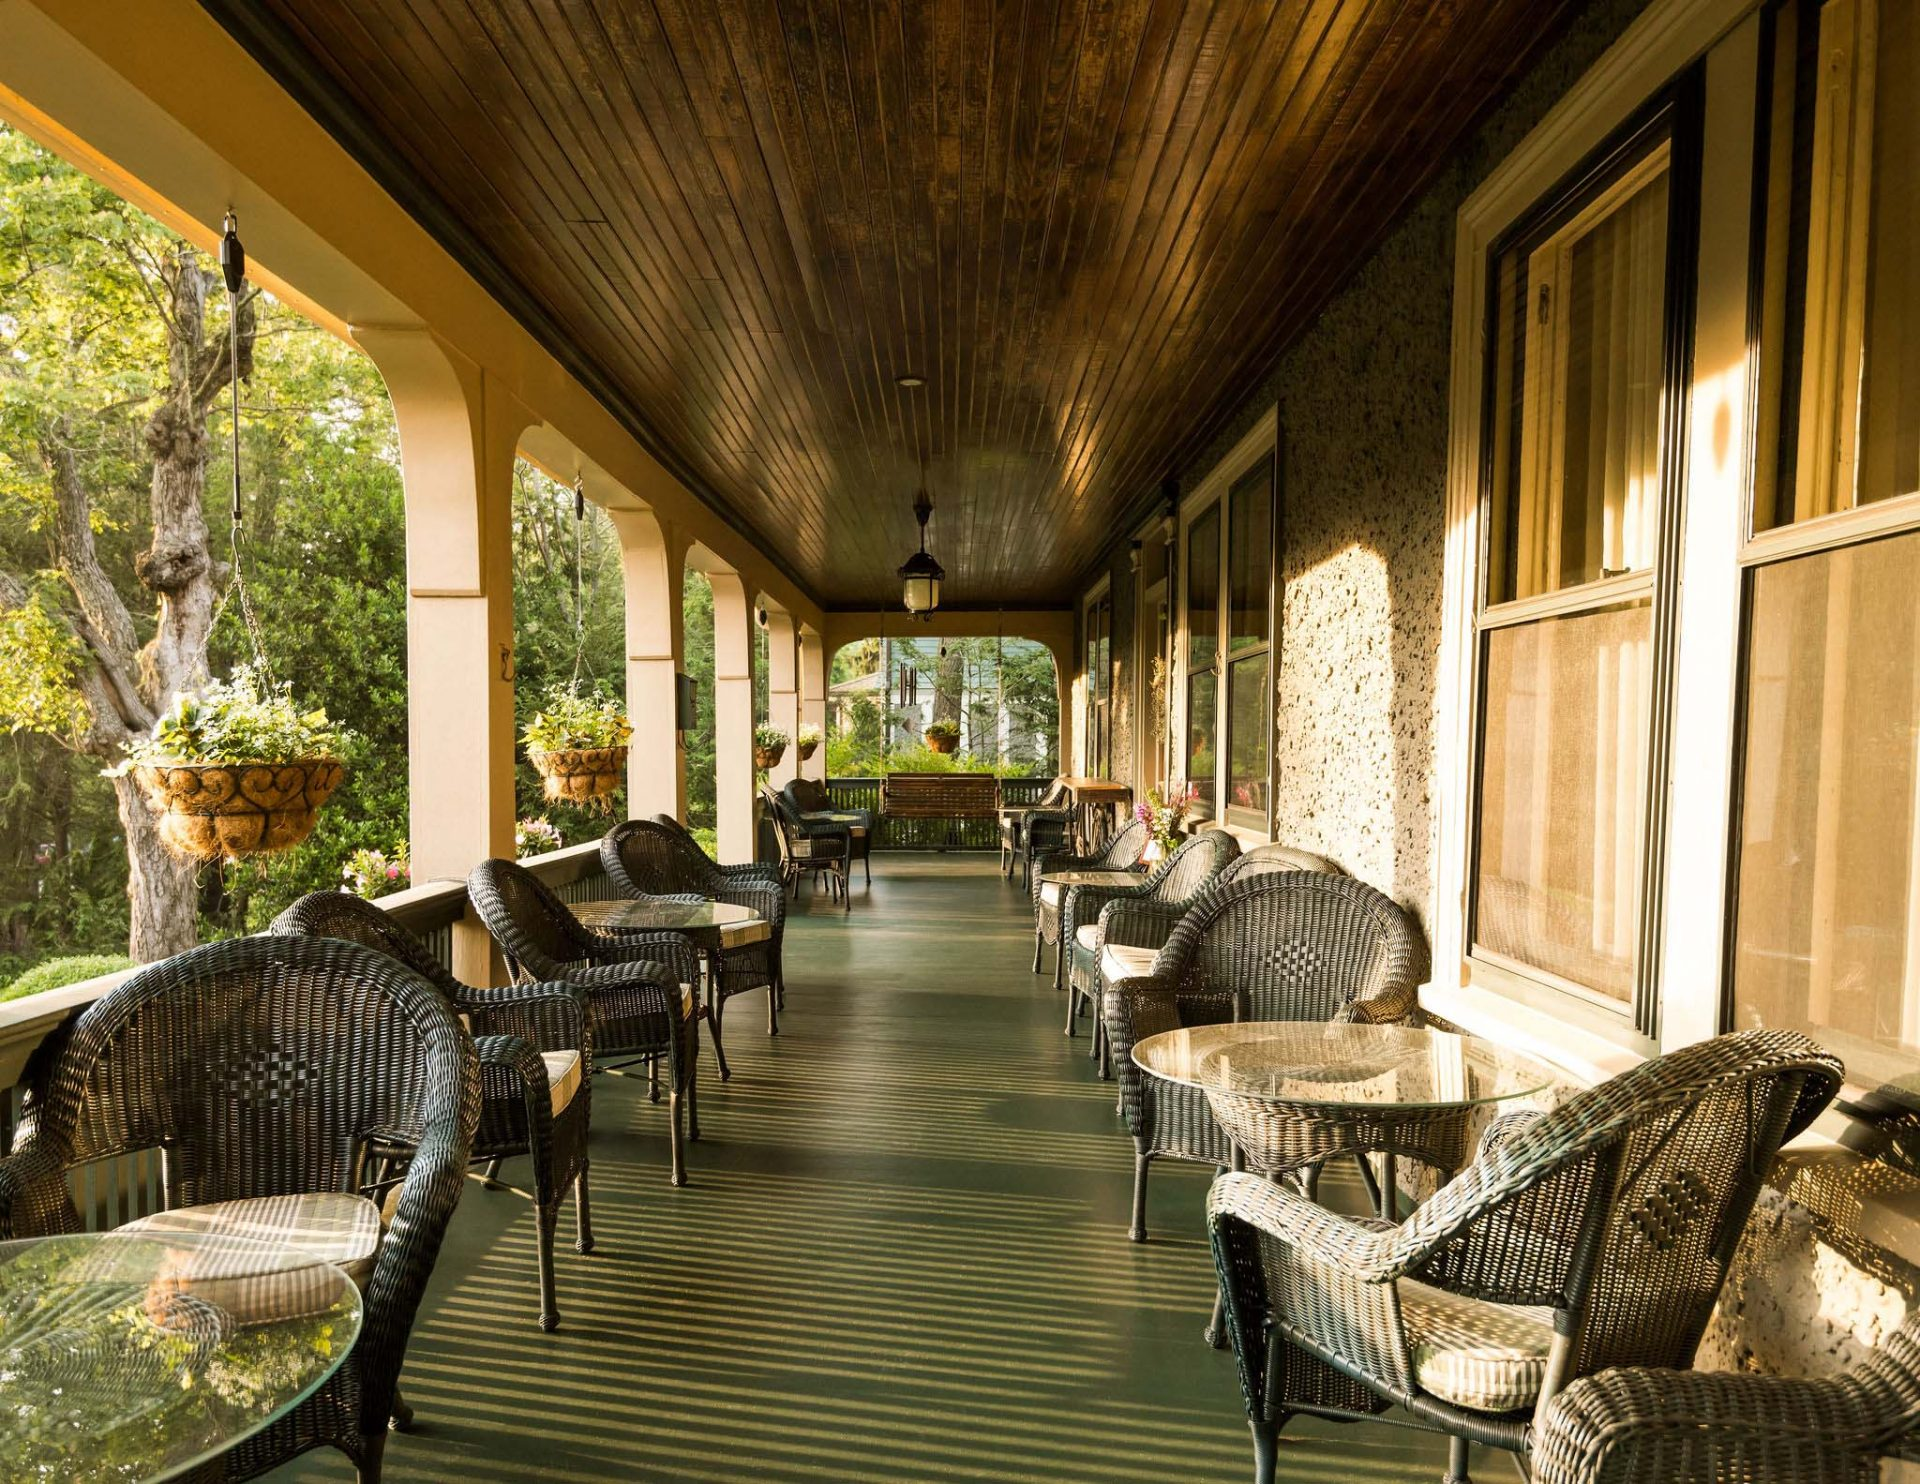 The front porch of the Inn with a wooden brown ceiling and two rows of rattan chairs and tables.